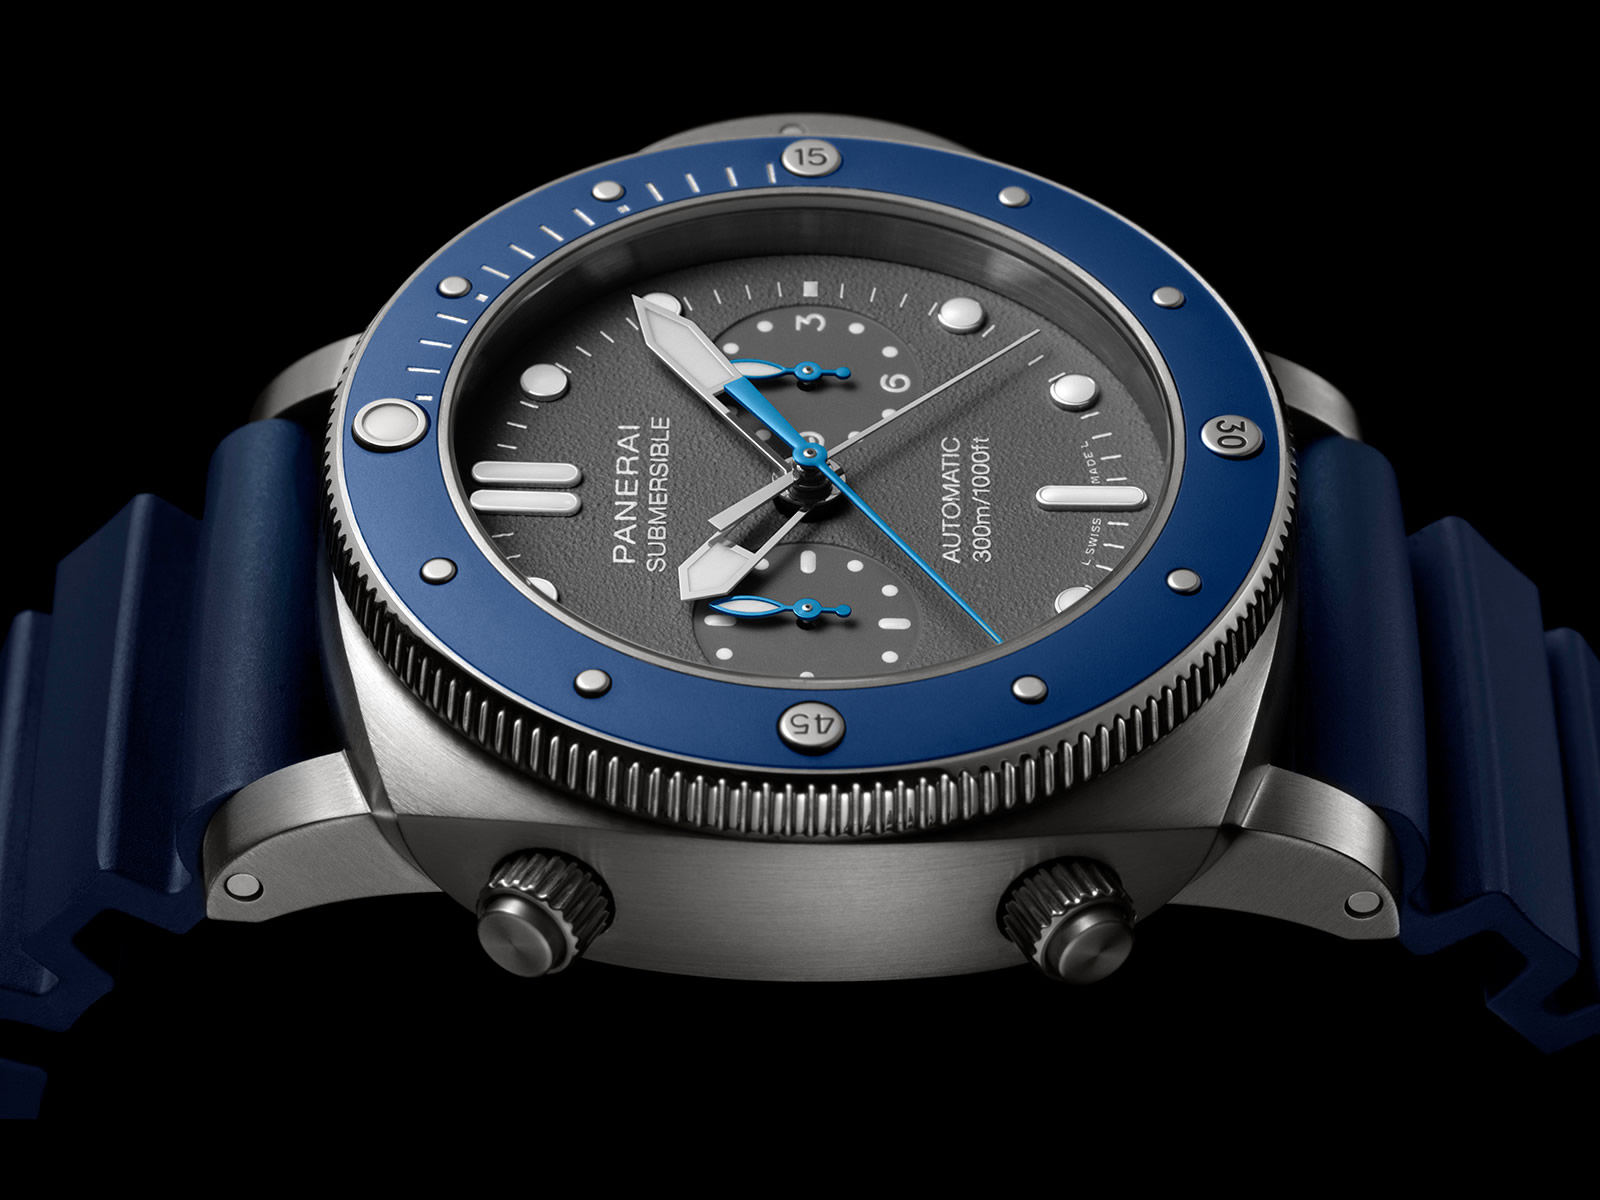 pam00982-officine-panerai-submersible-chrono-guillaume-nery-edition-grey-dial-3-.jpg